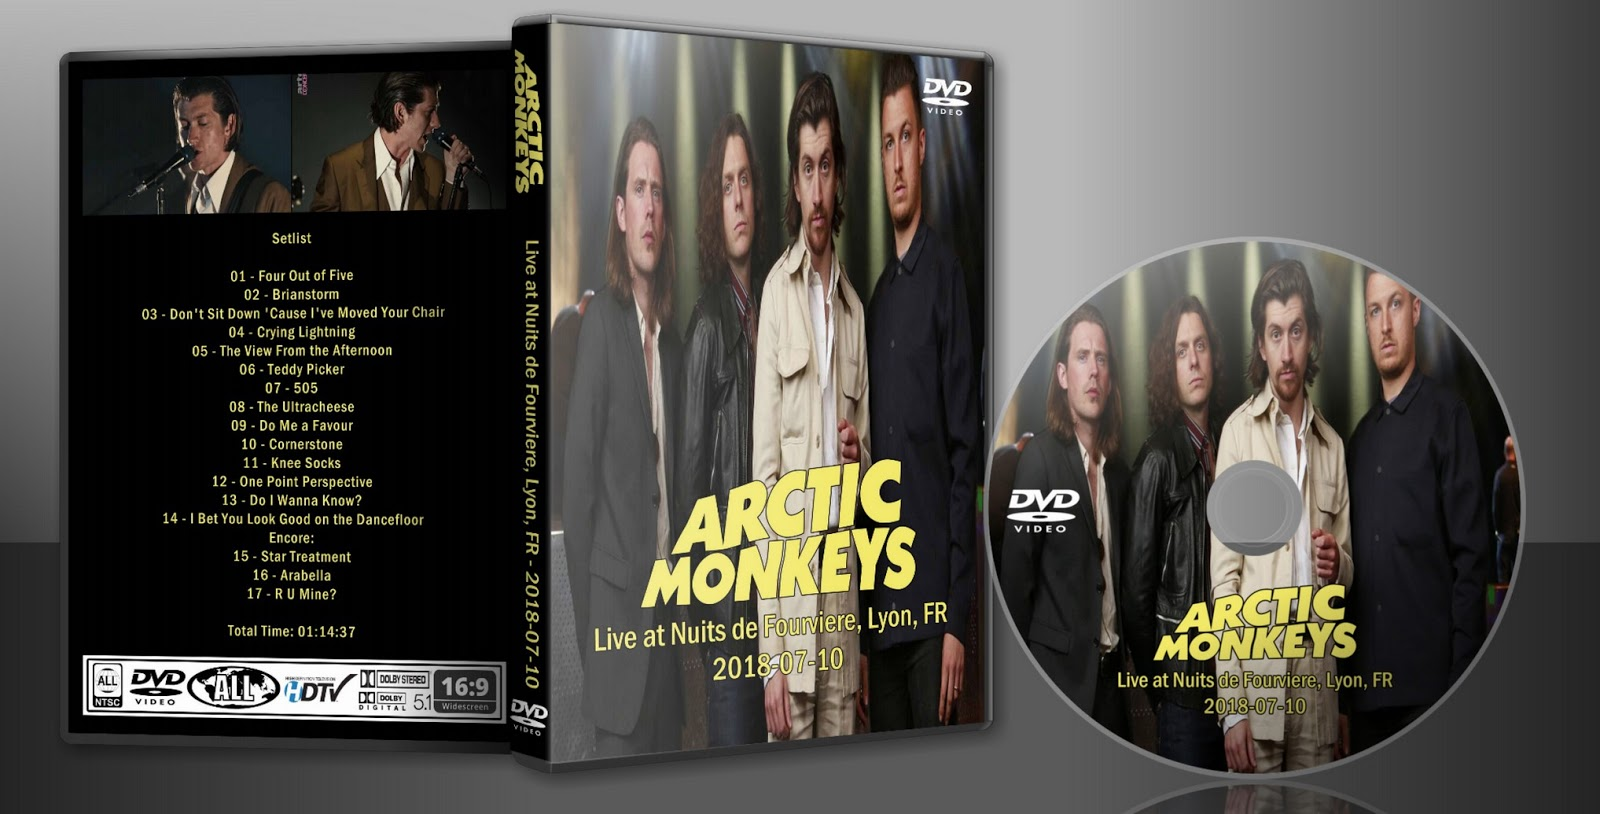 Deer5001RockCocert : Arctic Monkeys - 2018-07-10 - Live At Nuits De  Fourviere, Lyon, FR - HD-Webcast > DVD